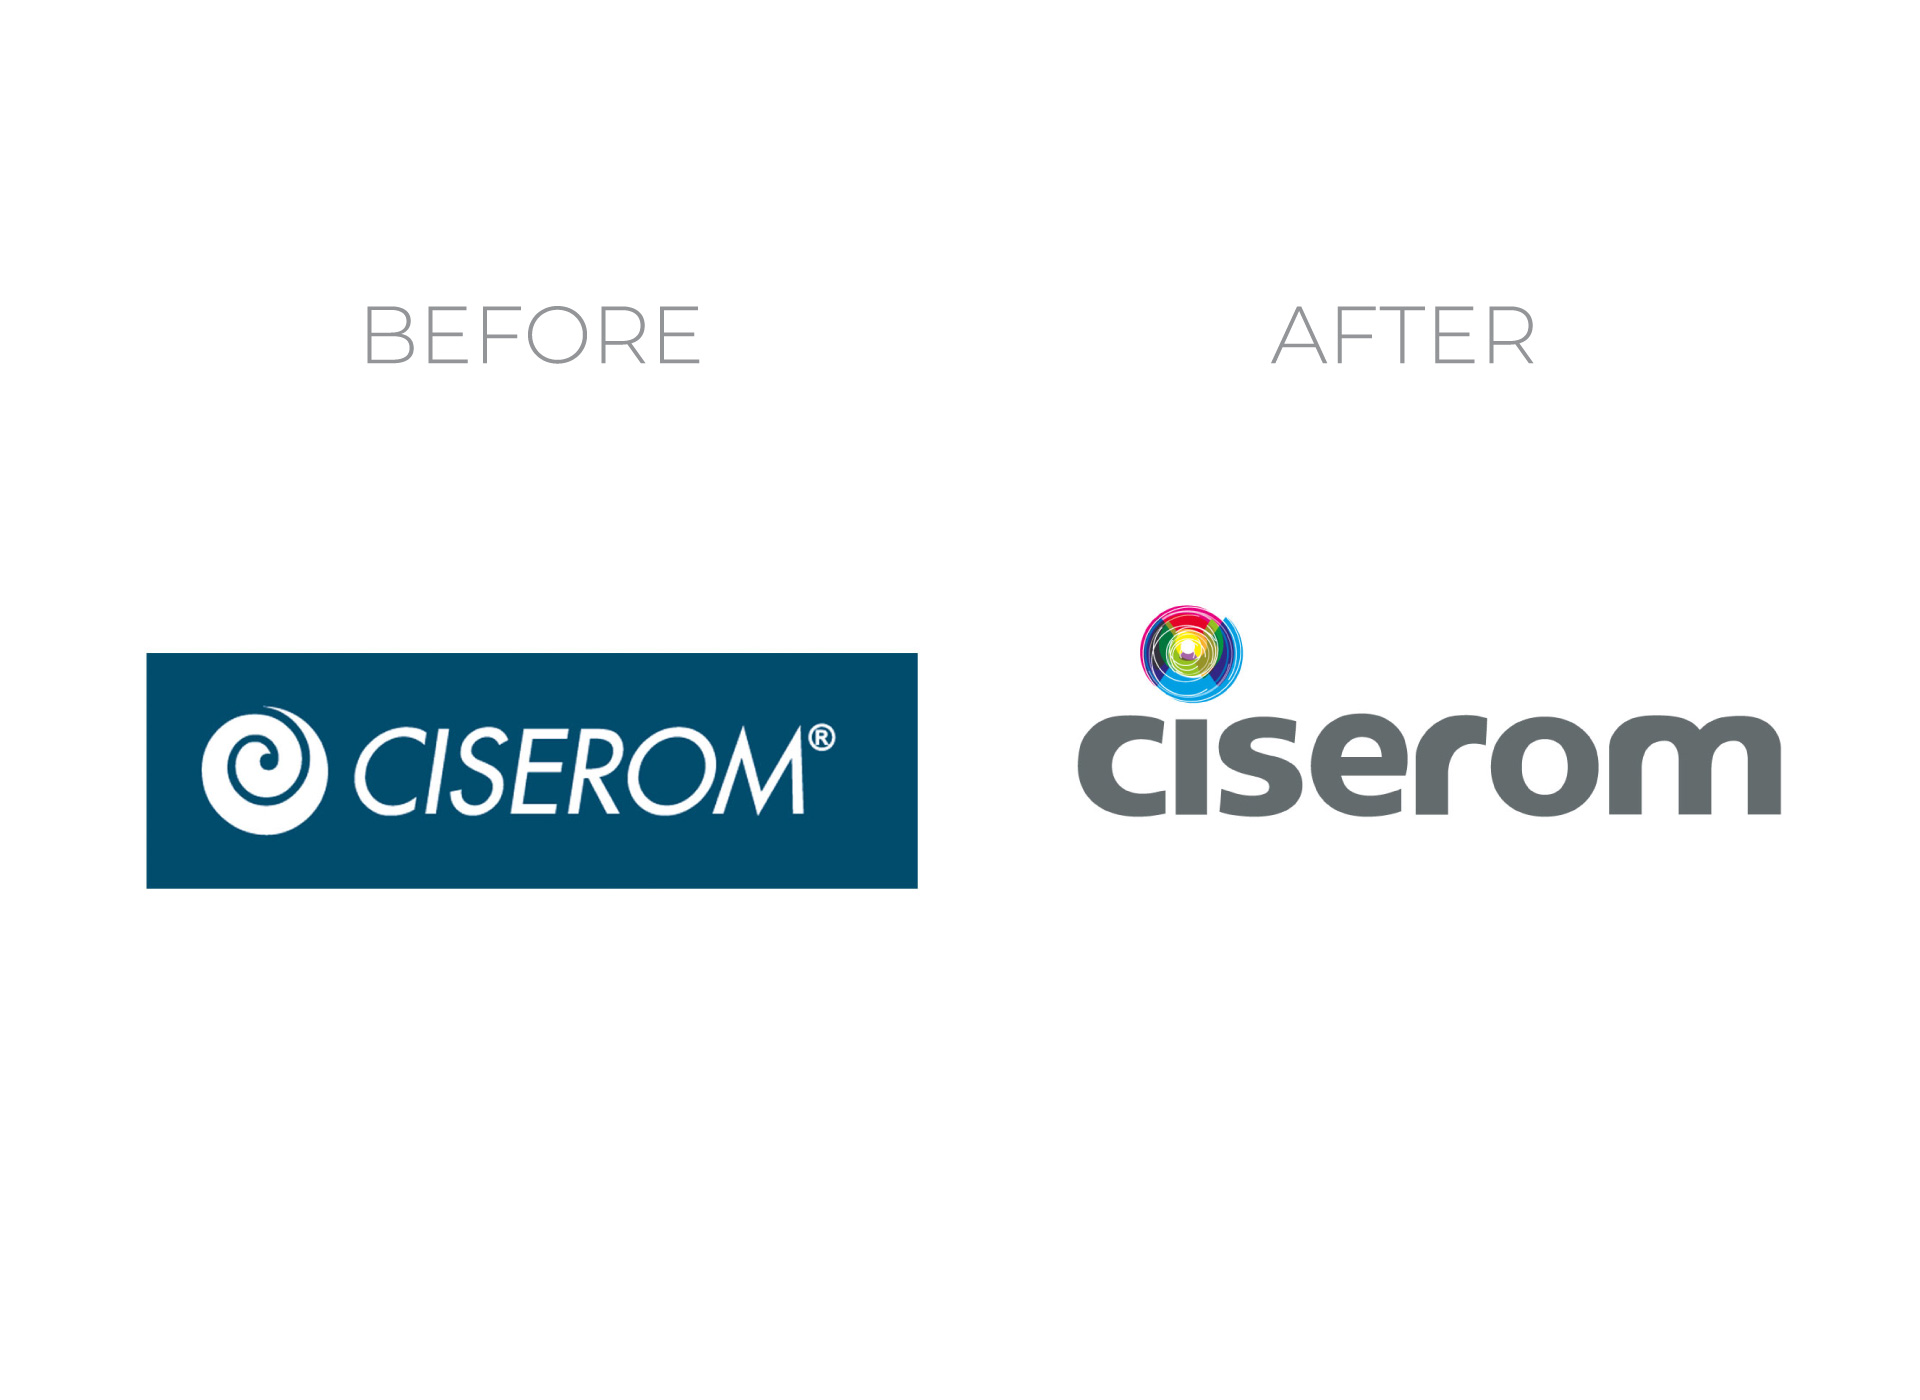 ciserom portfolio inoveo before and after rebranding